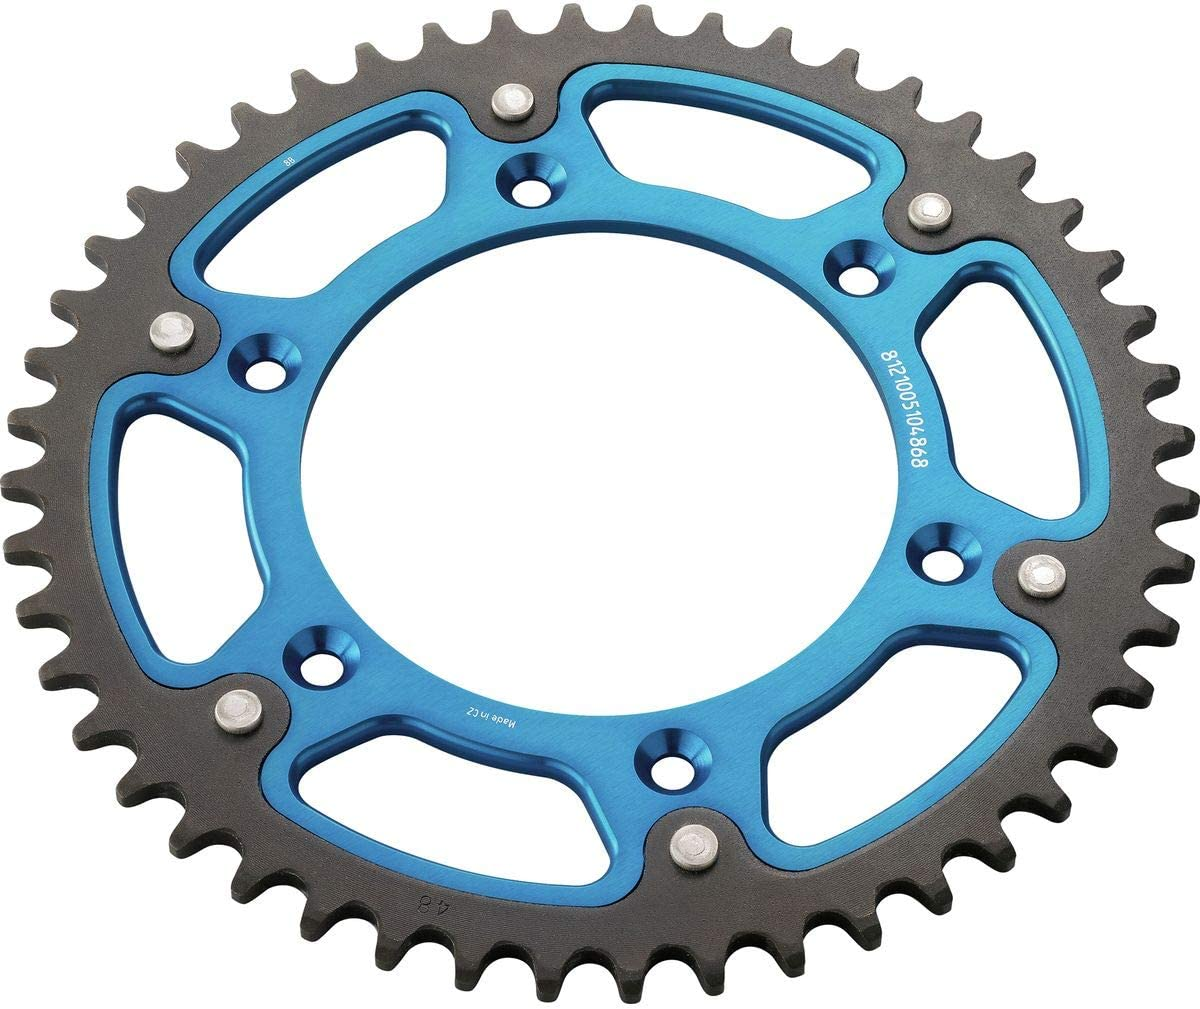 14-18 HUSQVARNA FC450HQ 50 Tooth Husqvarna PowerParts 2K Rear Sprocket Blue